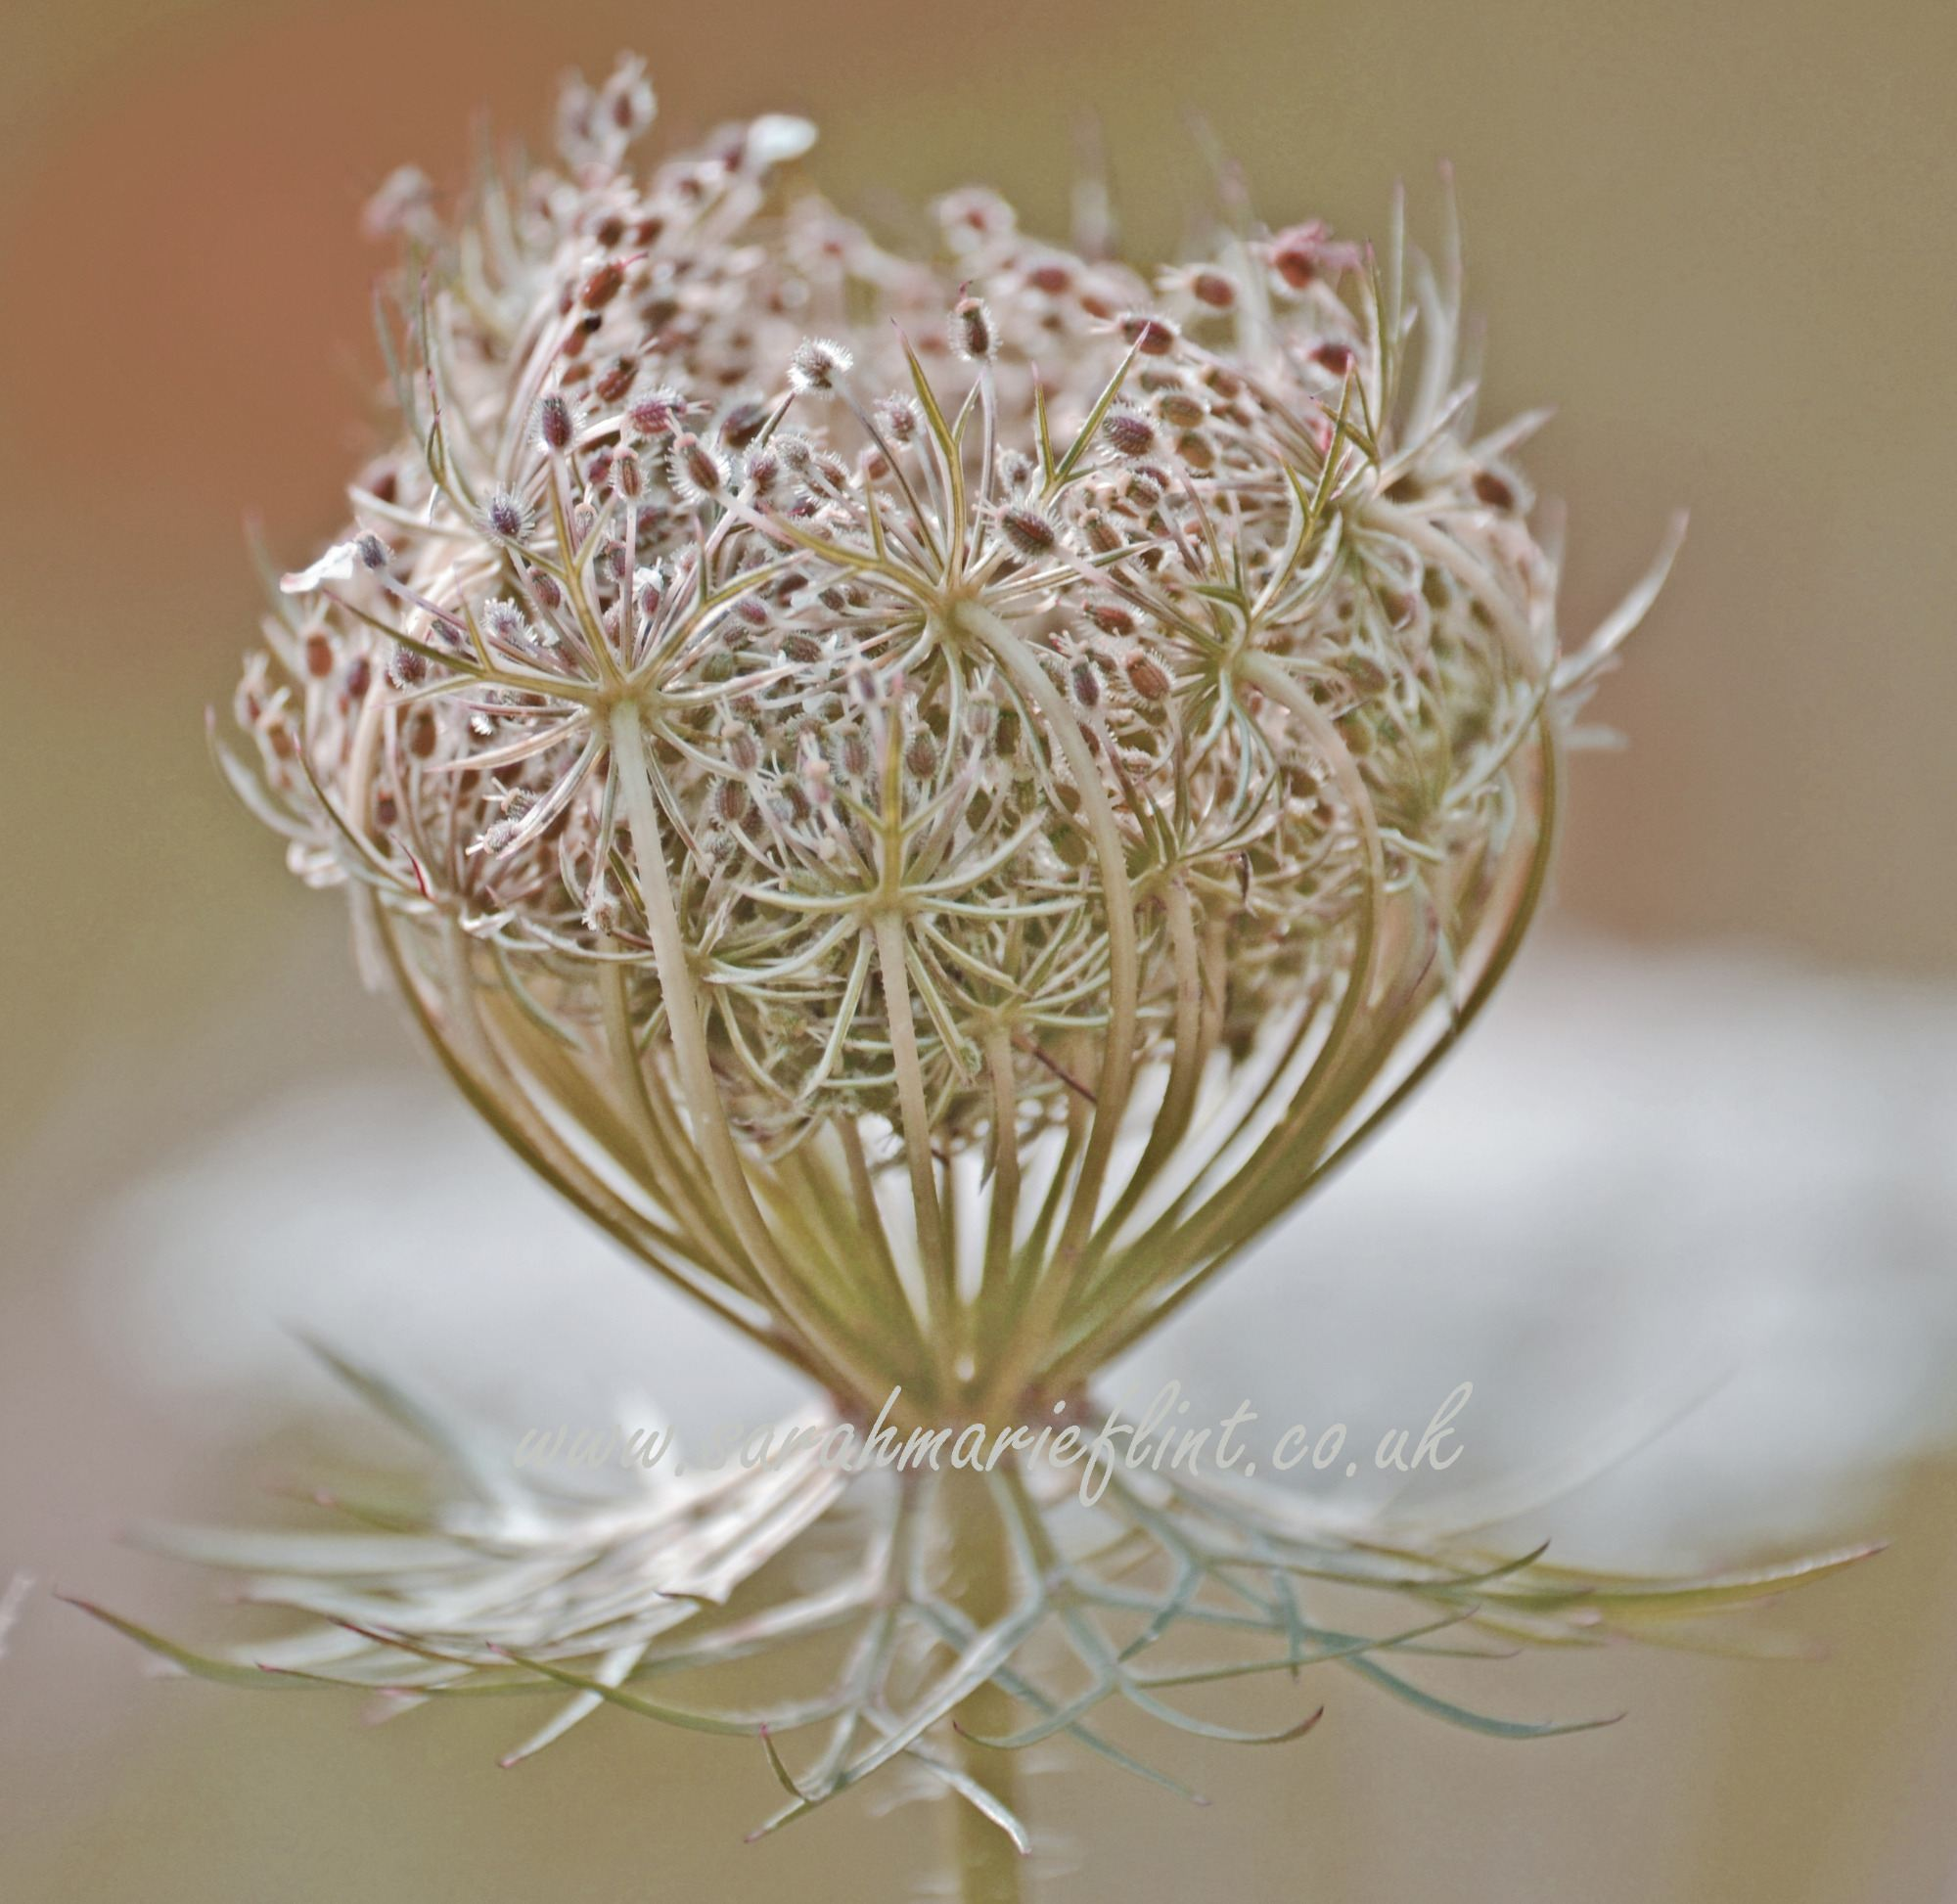 Sepia Photograph of a Carrot Seed Head